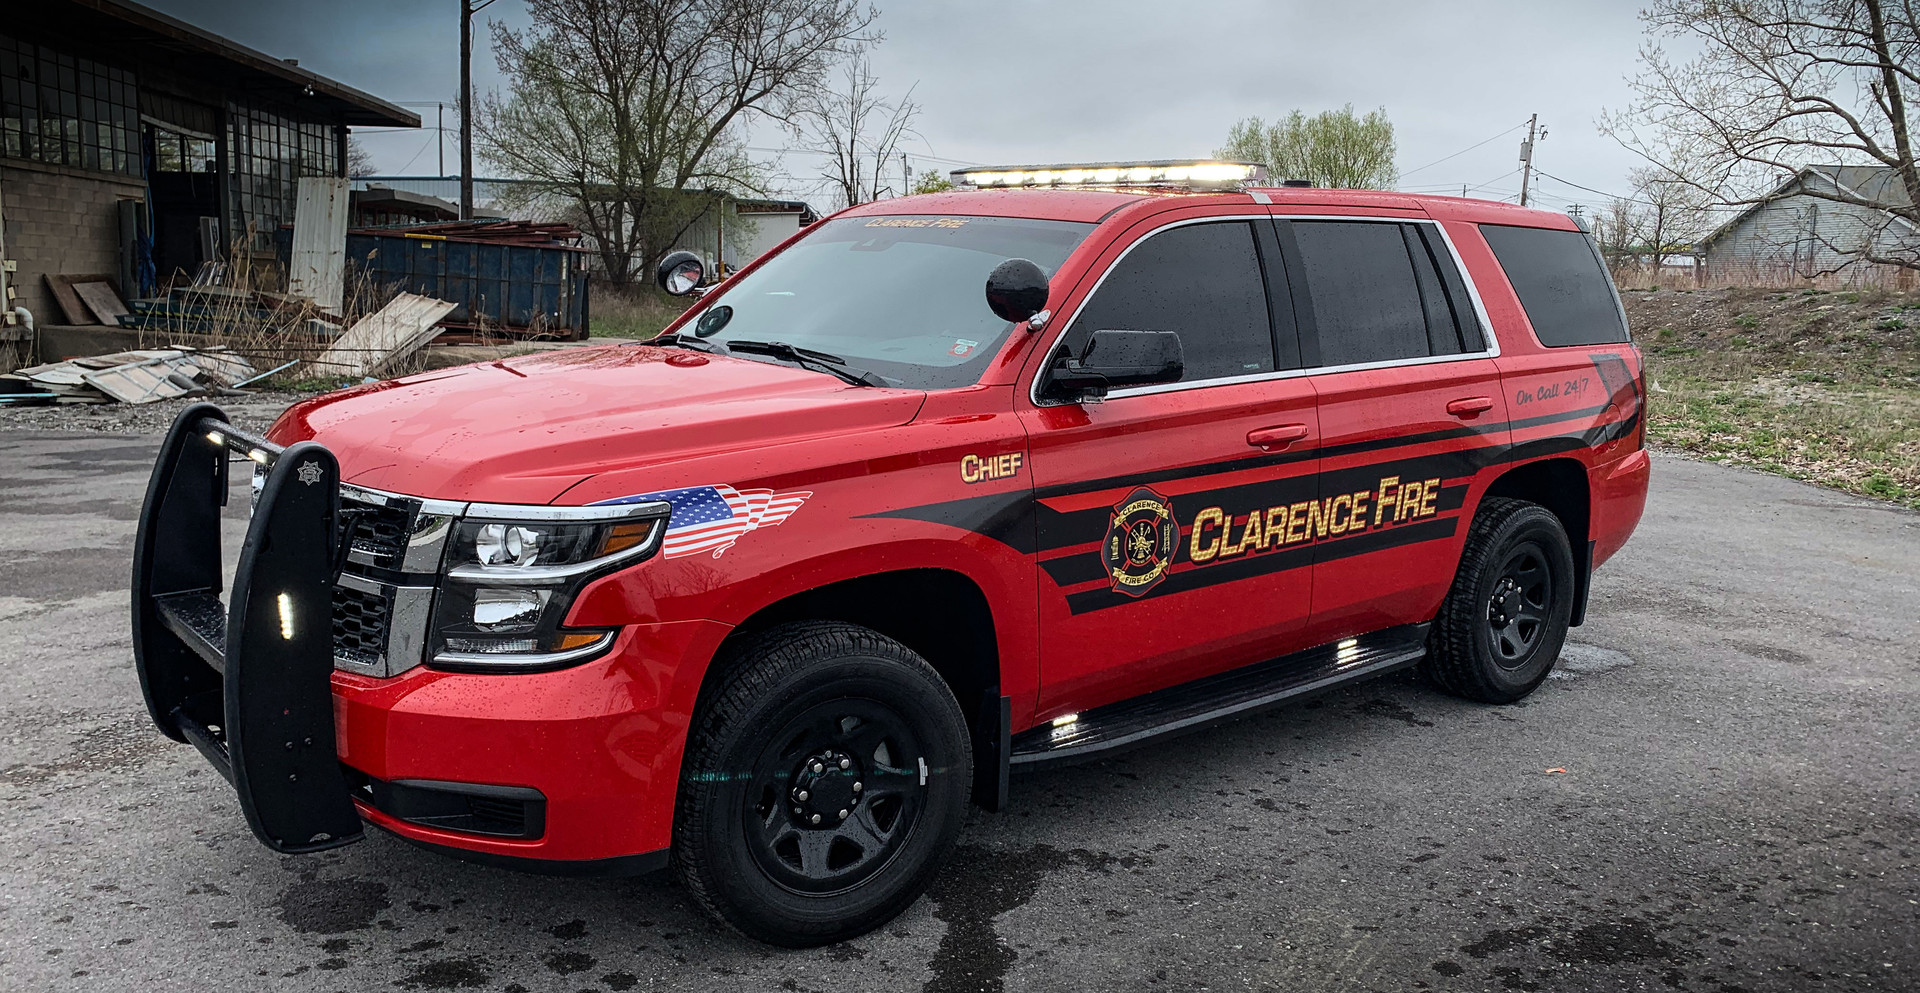 Clarence FD